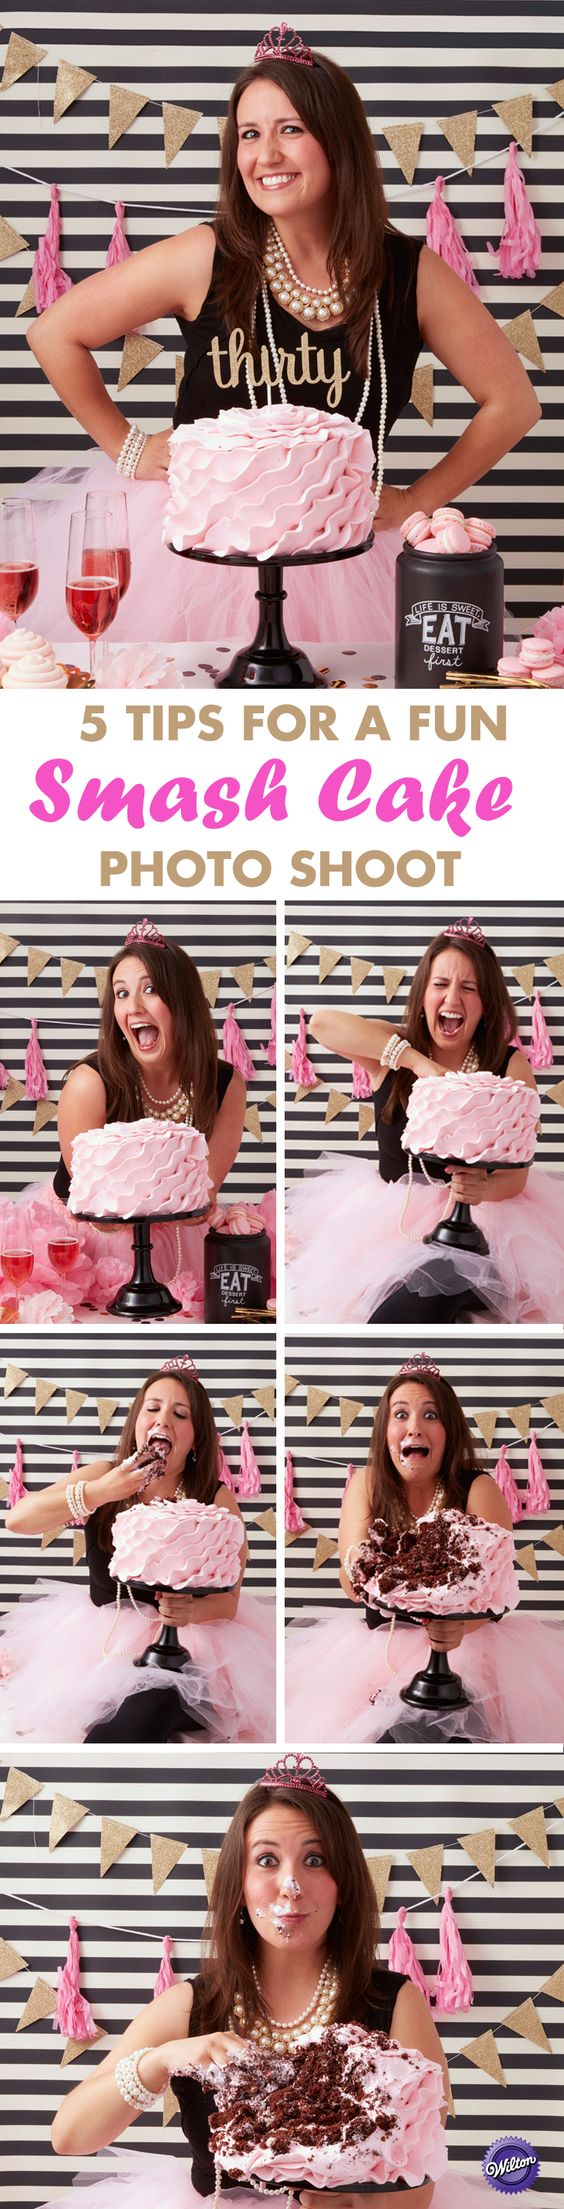 5 Tips for a Fun Grown-up Smash Cake Session –  Do something fun and memorable to celebrate a birthday milestone by holding a fun adult smash cake session. Read our five tips on how to have one awesome smash cake photo shoot!: